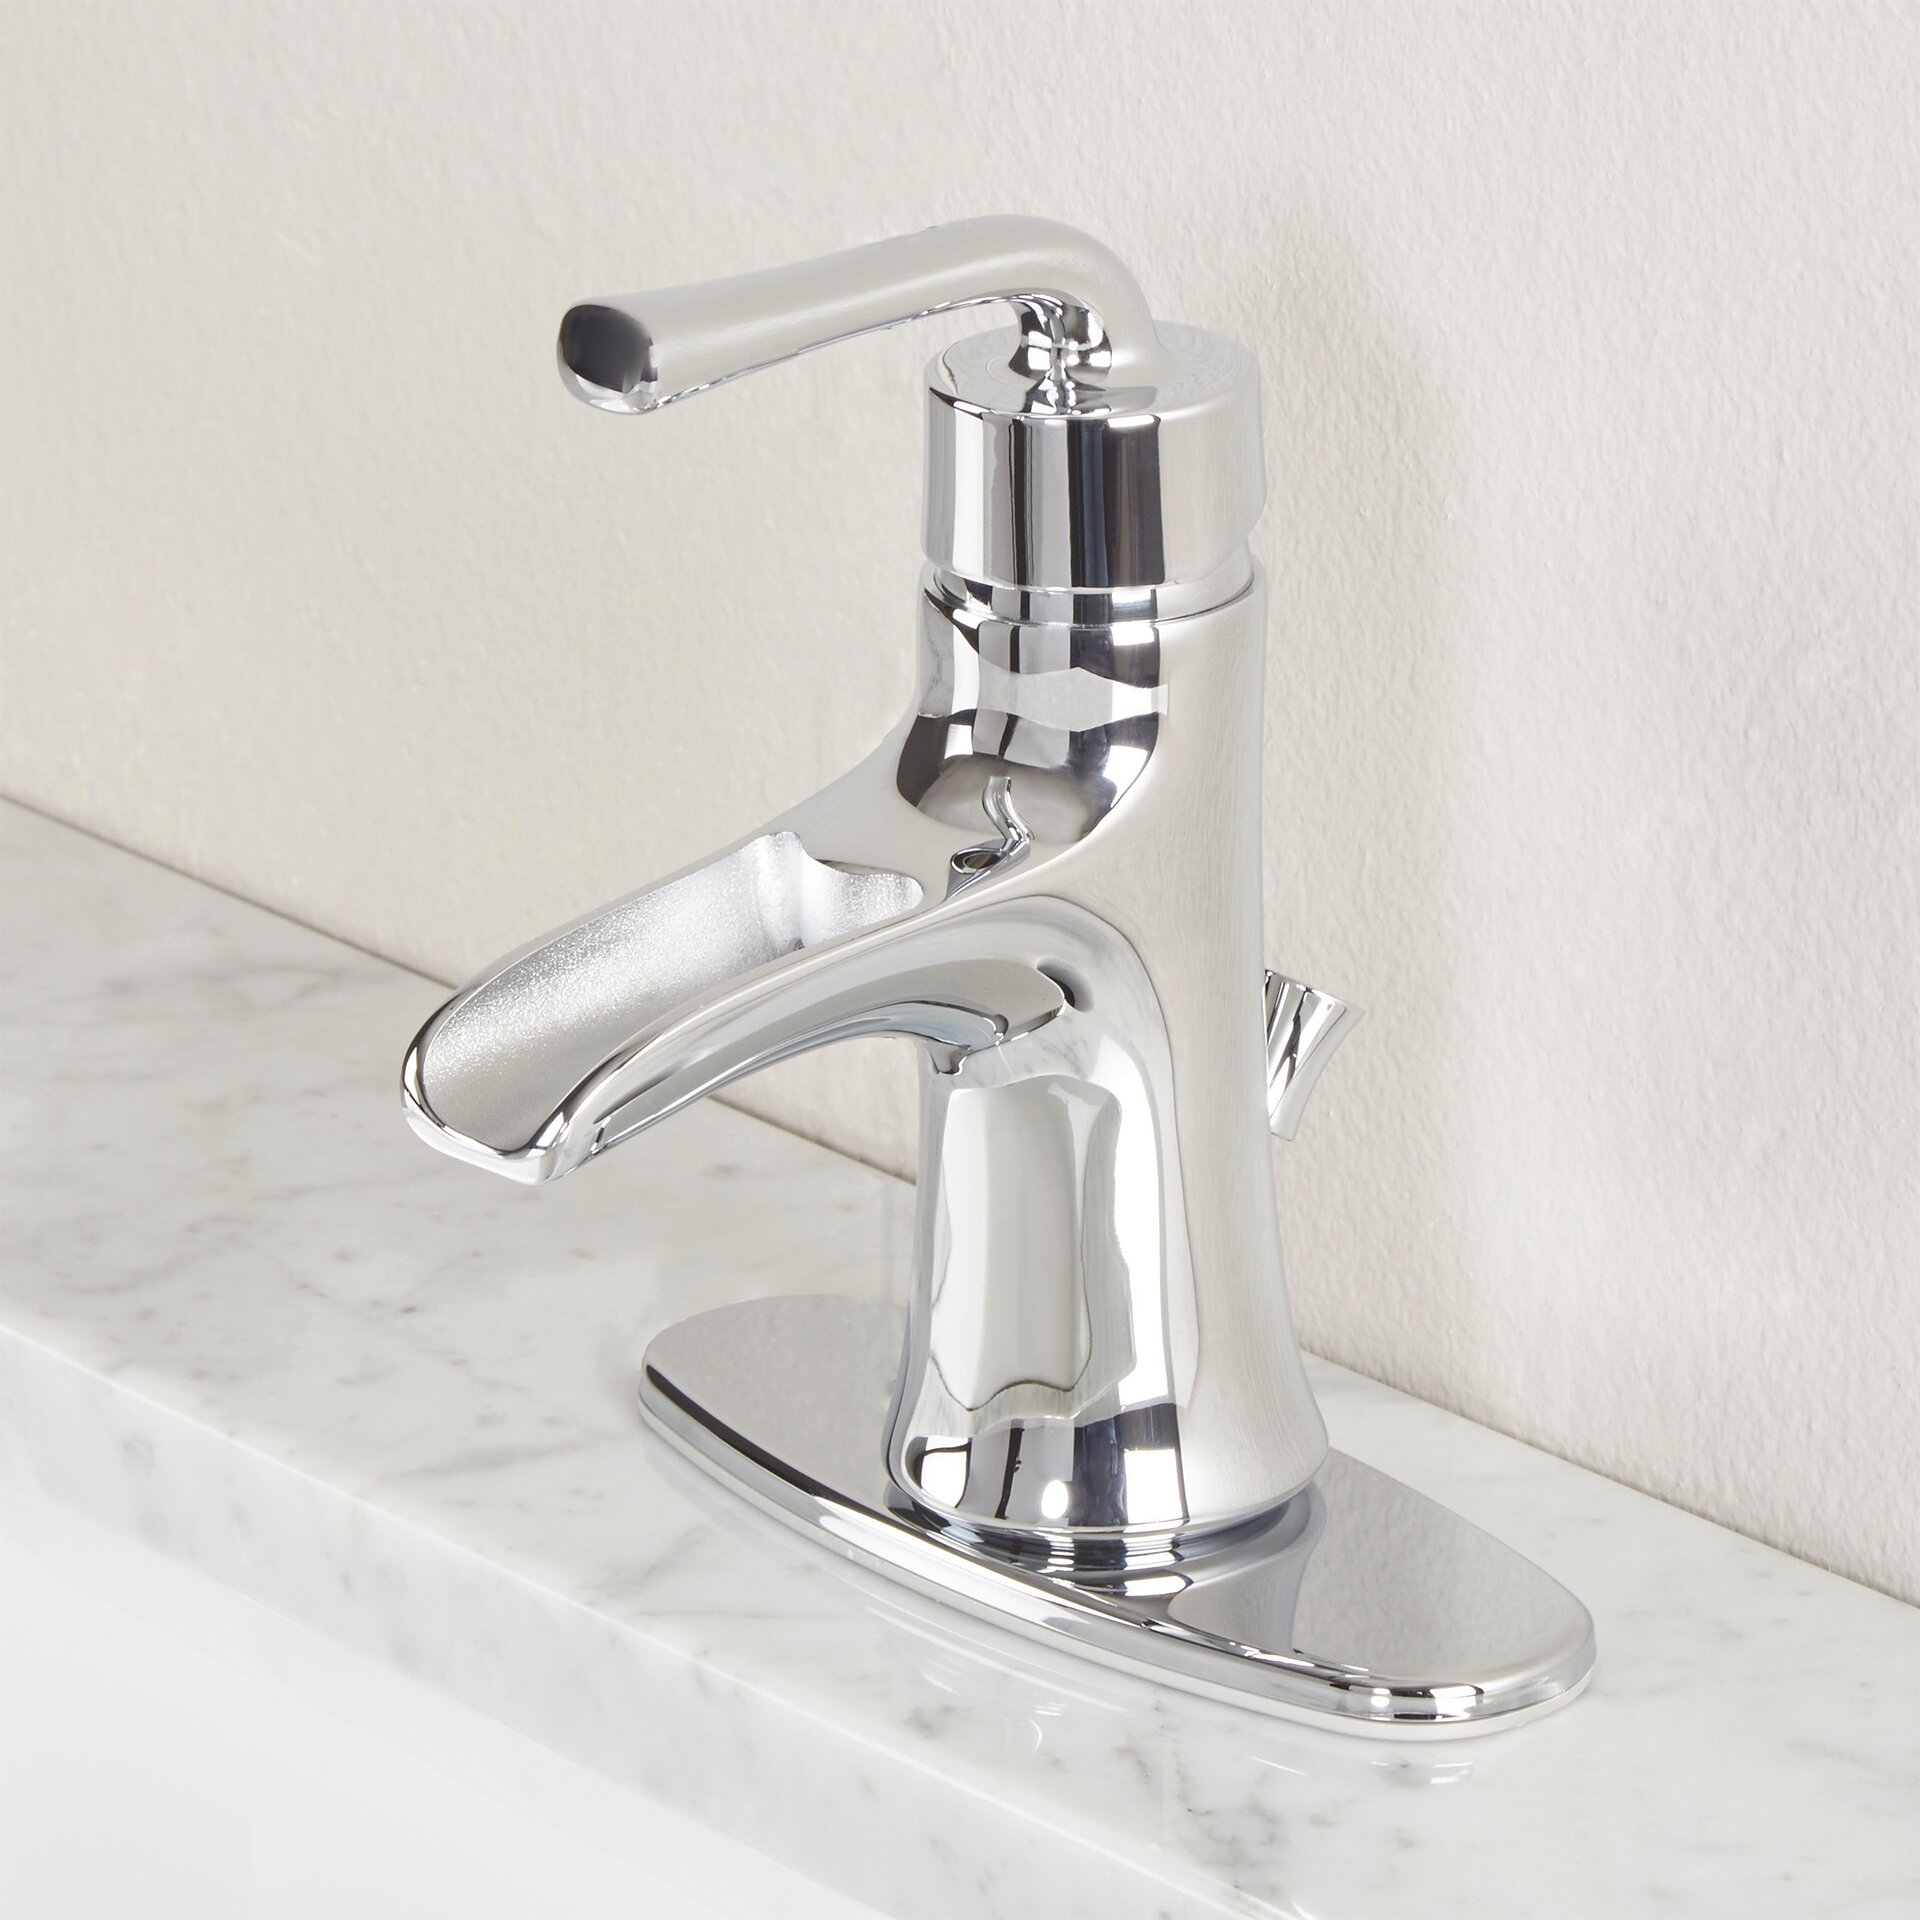 Premier faucet sanibel single handle bathroom faucet for Bathroom sink faucets